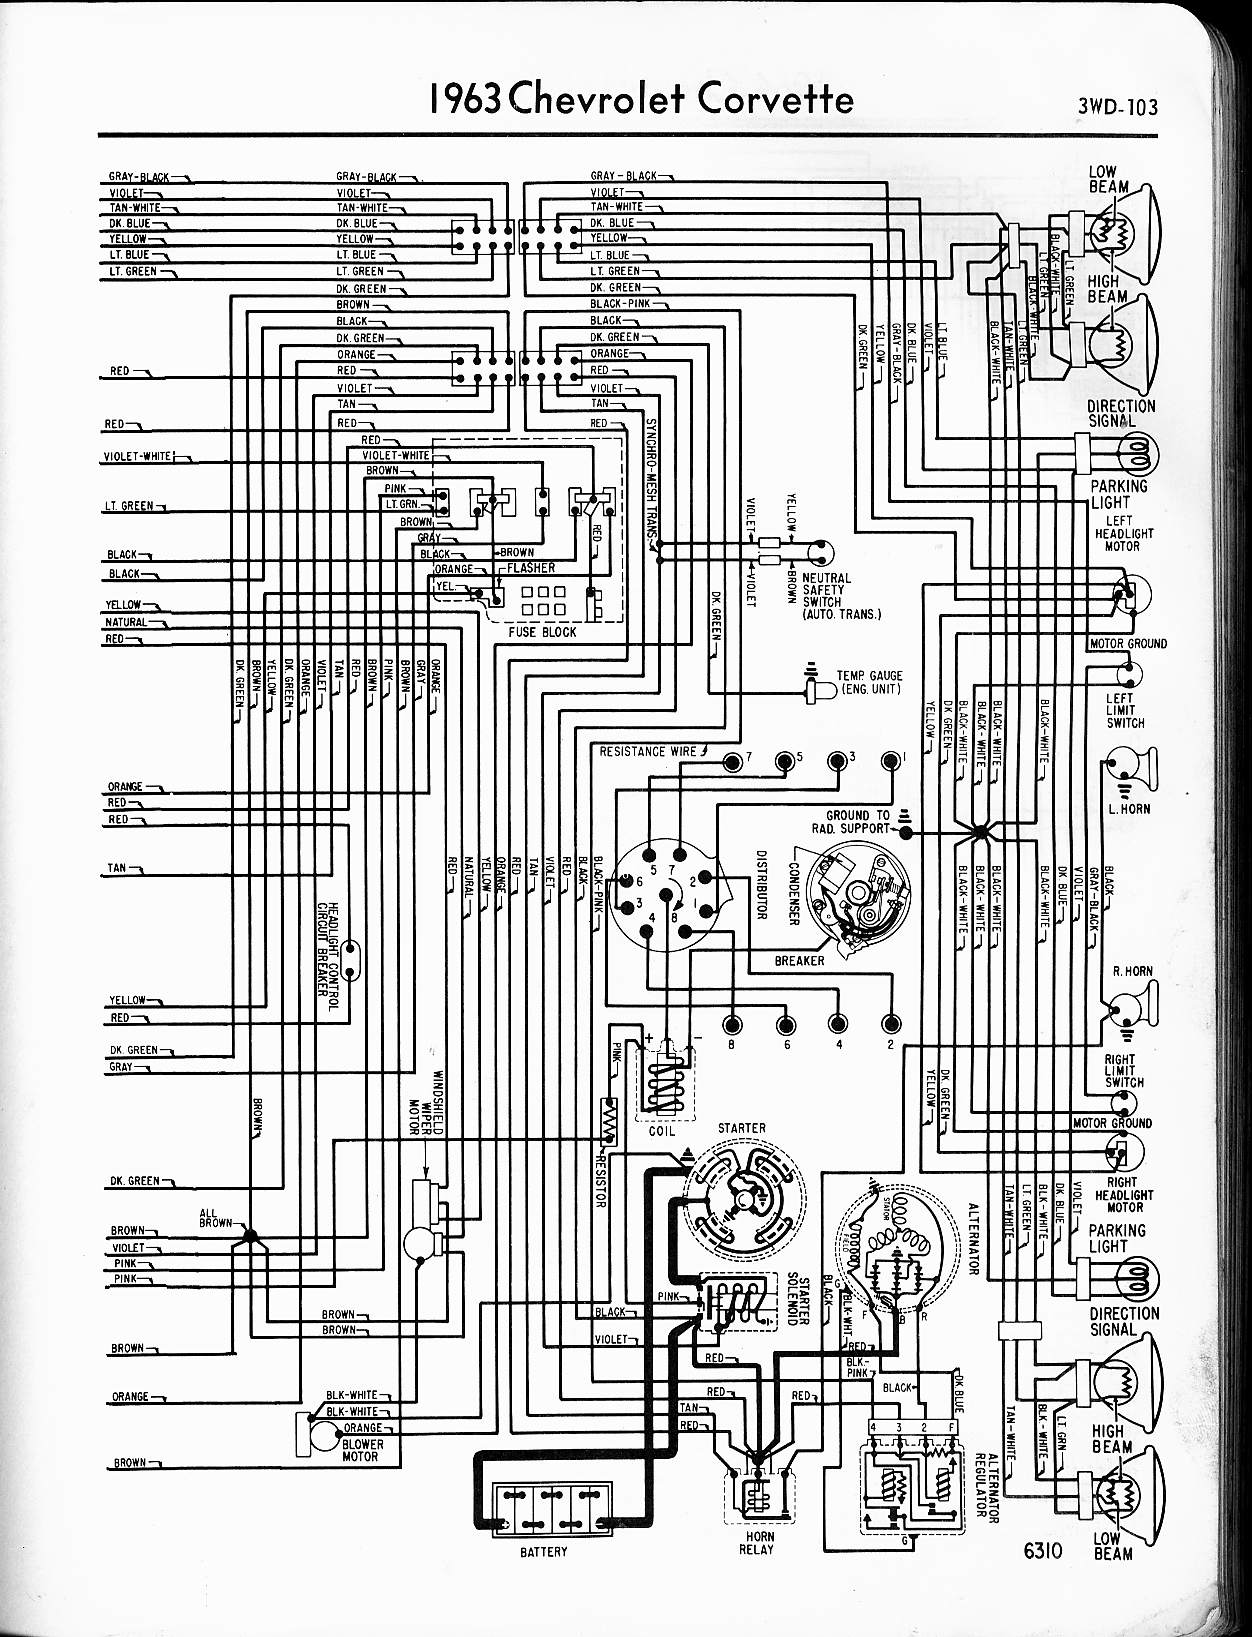 MWireChev63_3WD 103 57 65 chevy wiring diagrams 1969 corvette wiring diagram at gsmportal.co